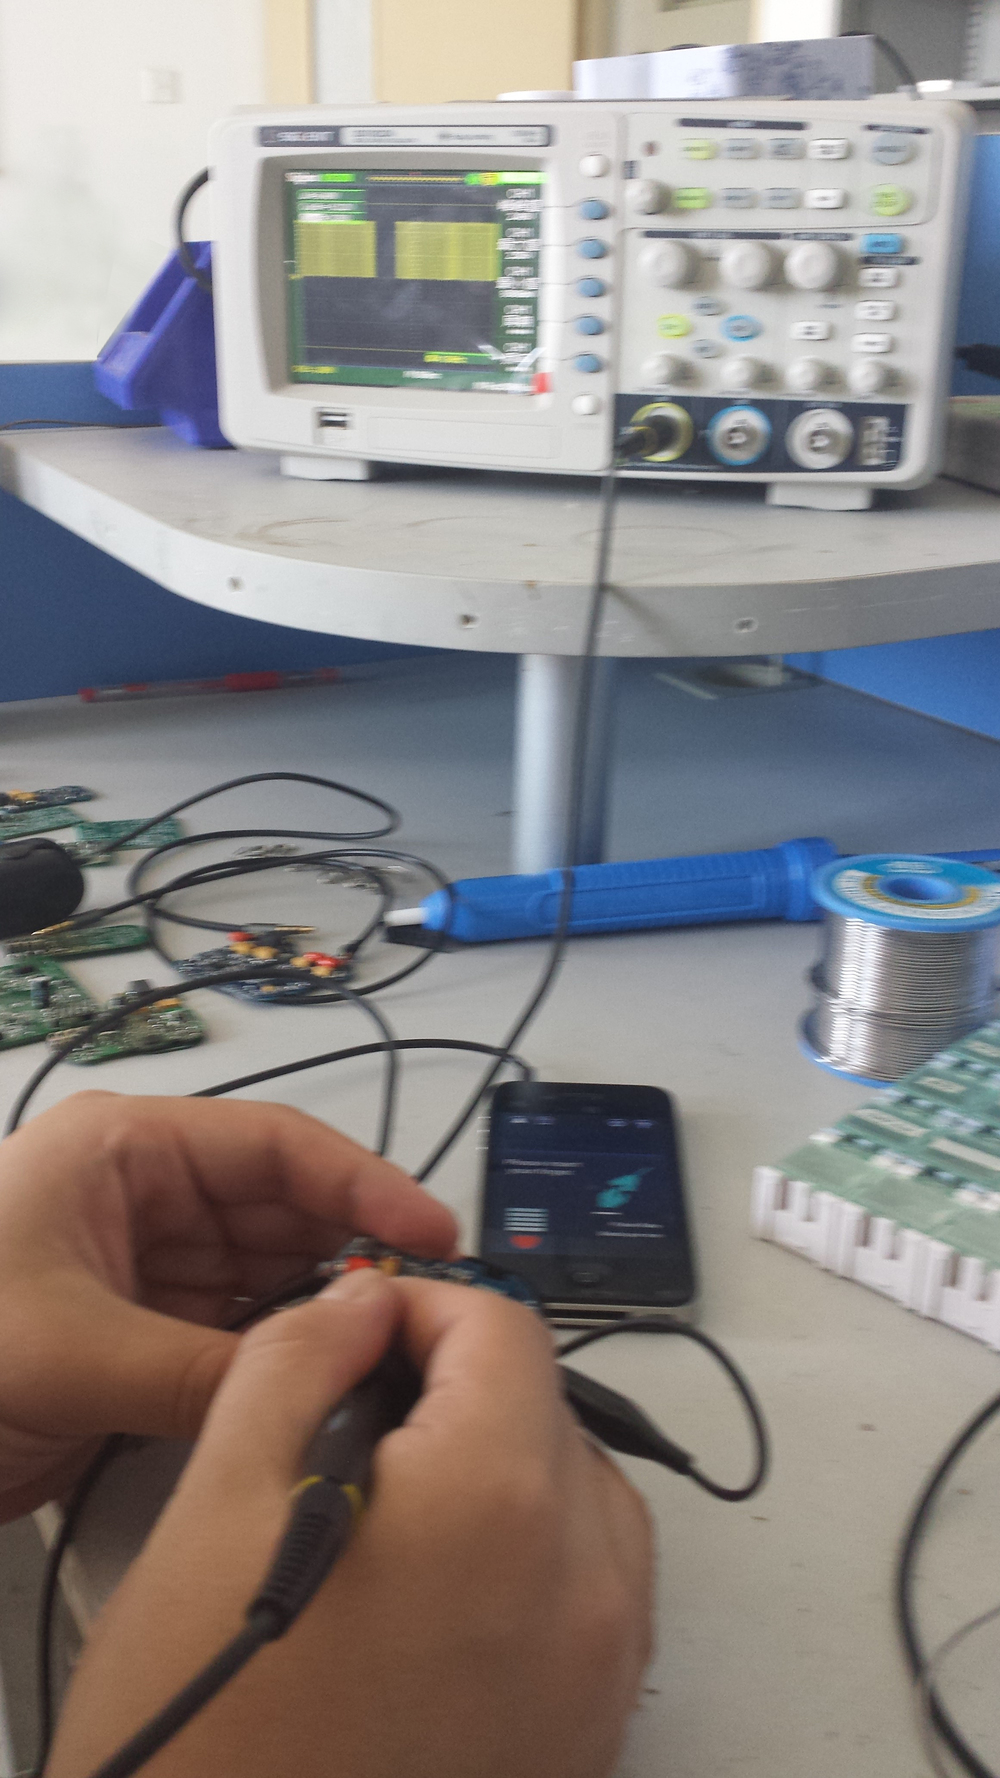 Calibration and testing on the oscilloscope.